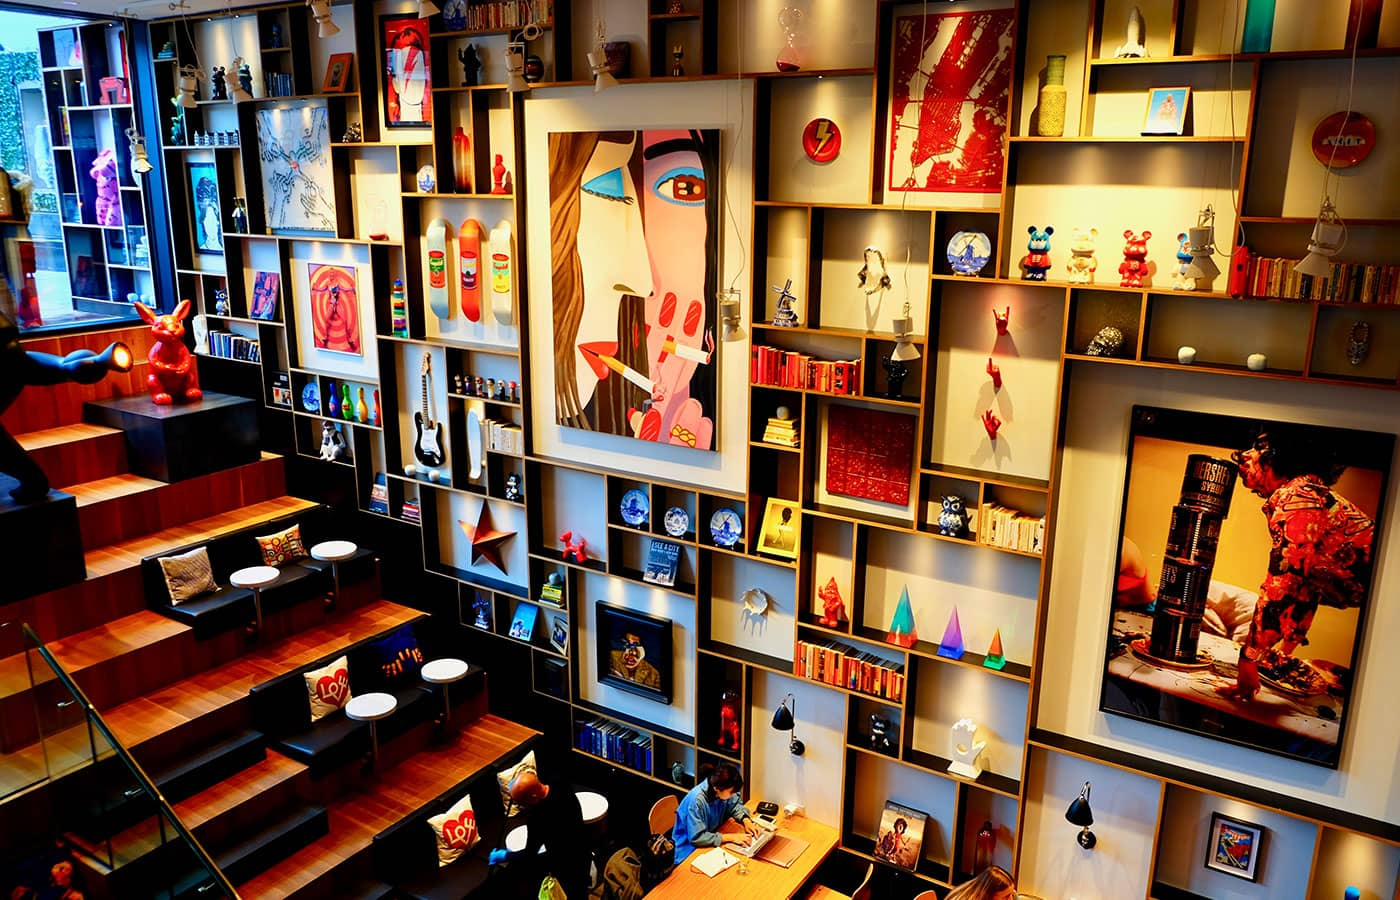 citizenM New York Bowery Hotel - Art